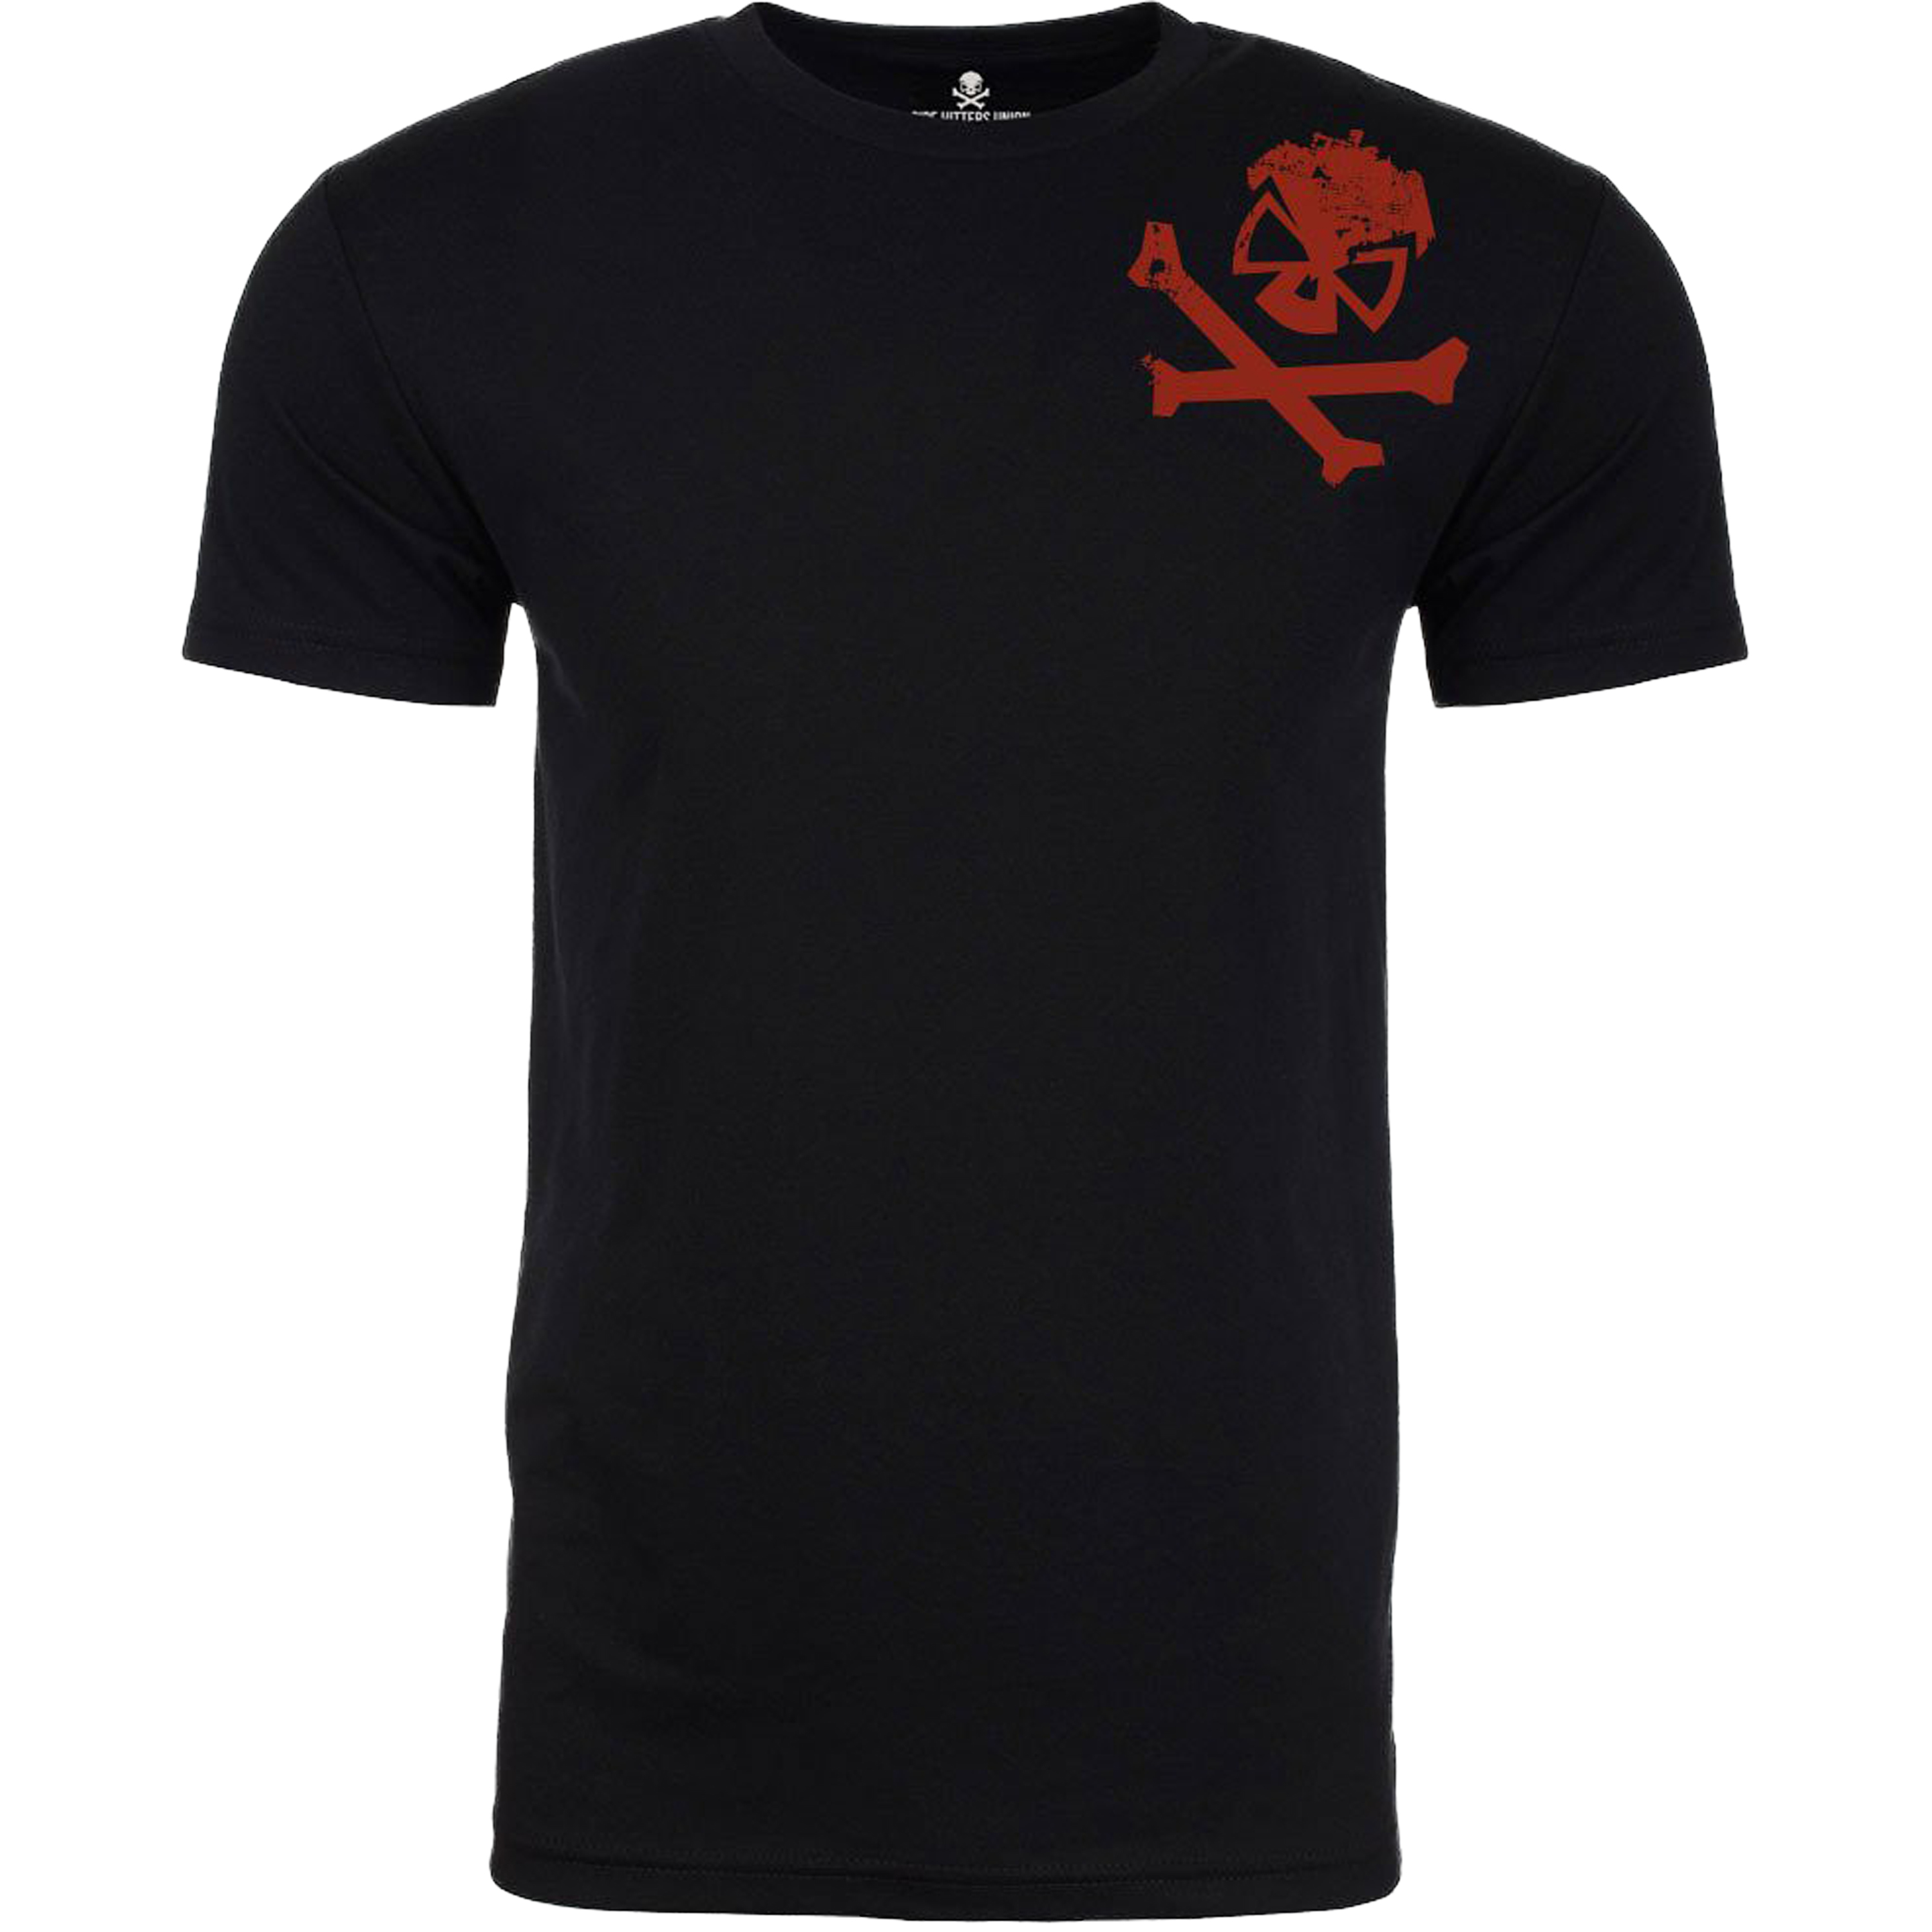 Pipe Hitters Union T-Shirt Security Round Tee schwarz